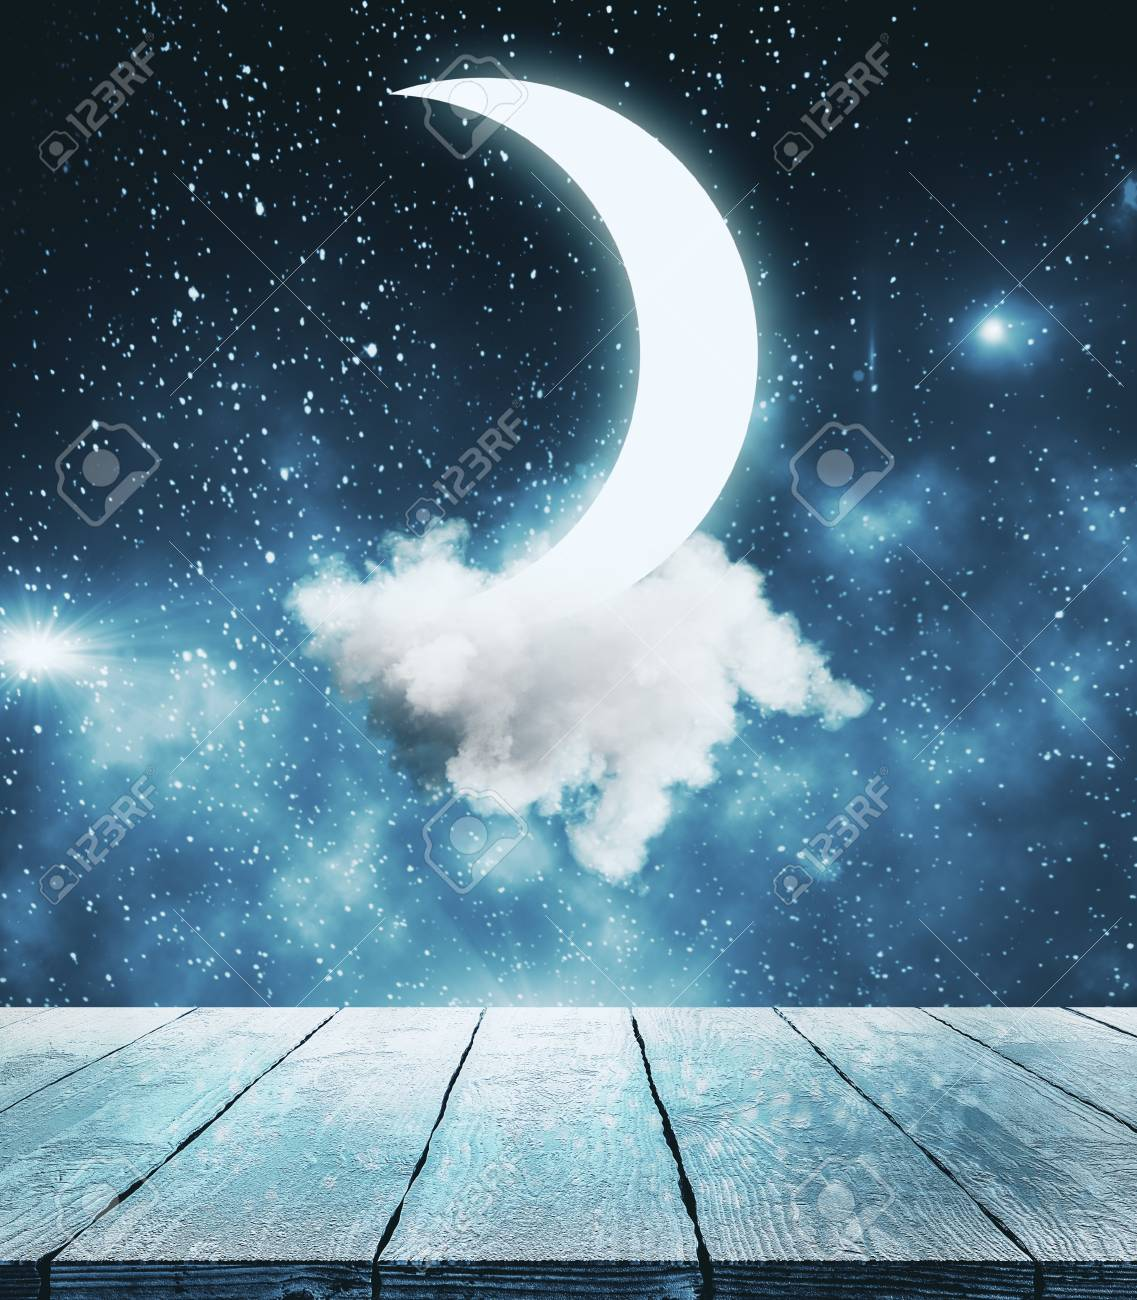 Creative Moon In Starry Sky Background Imagination And Dreams Concept Stock Photo